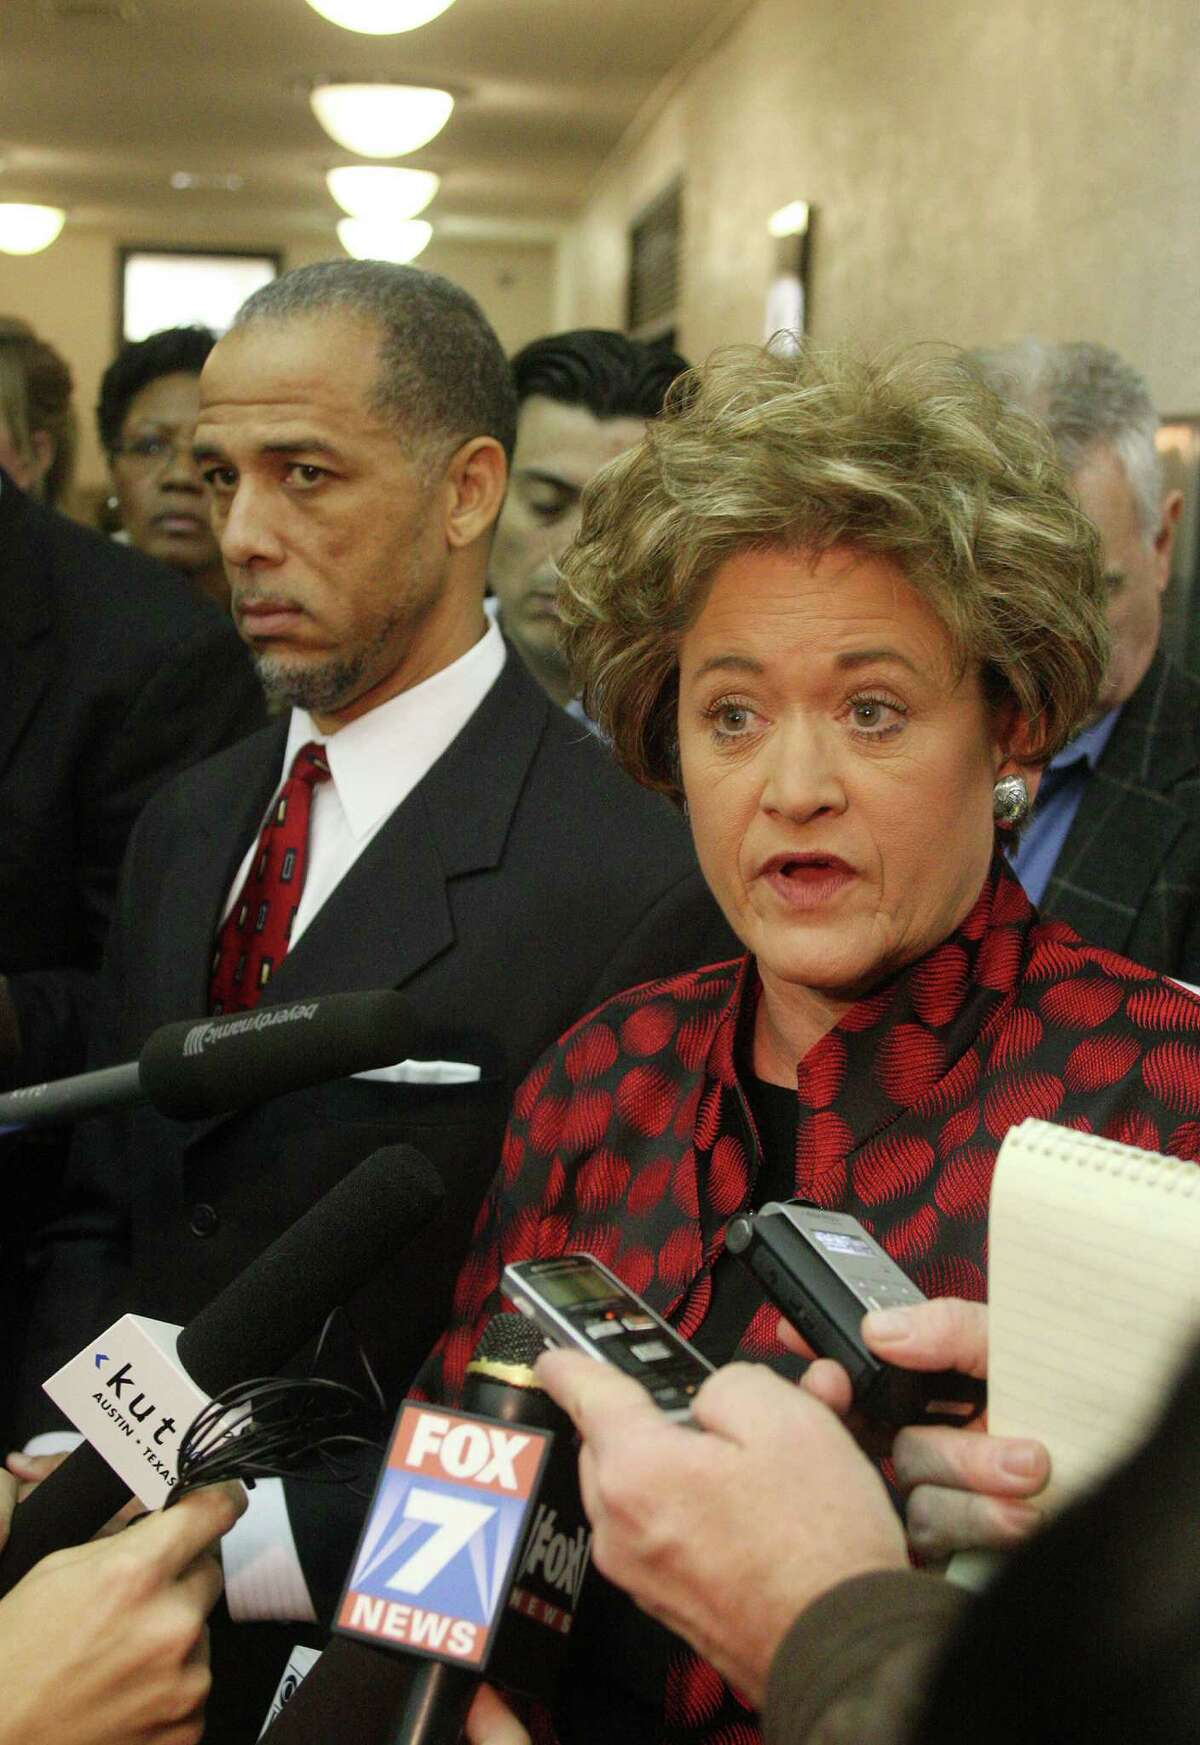 Travis County DA Rosemary Lehmberg apologized for the incident.